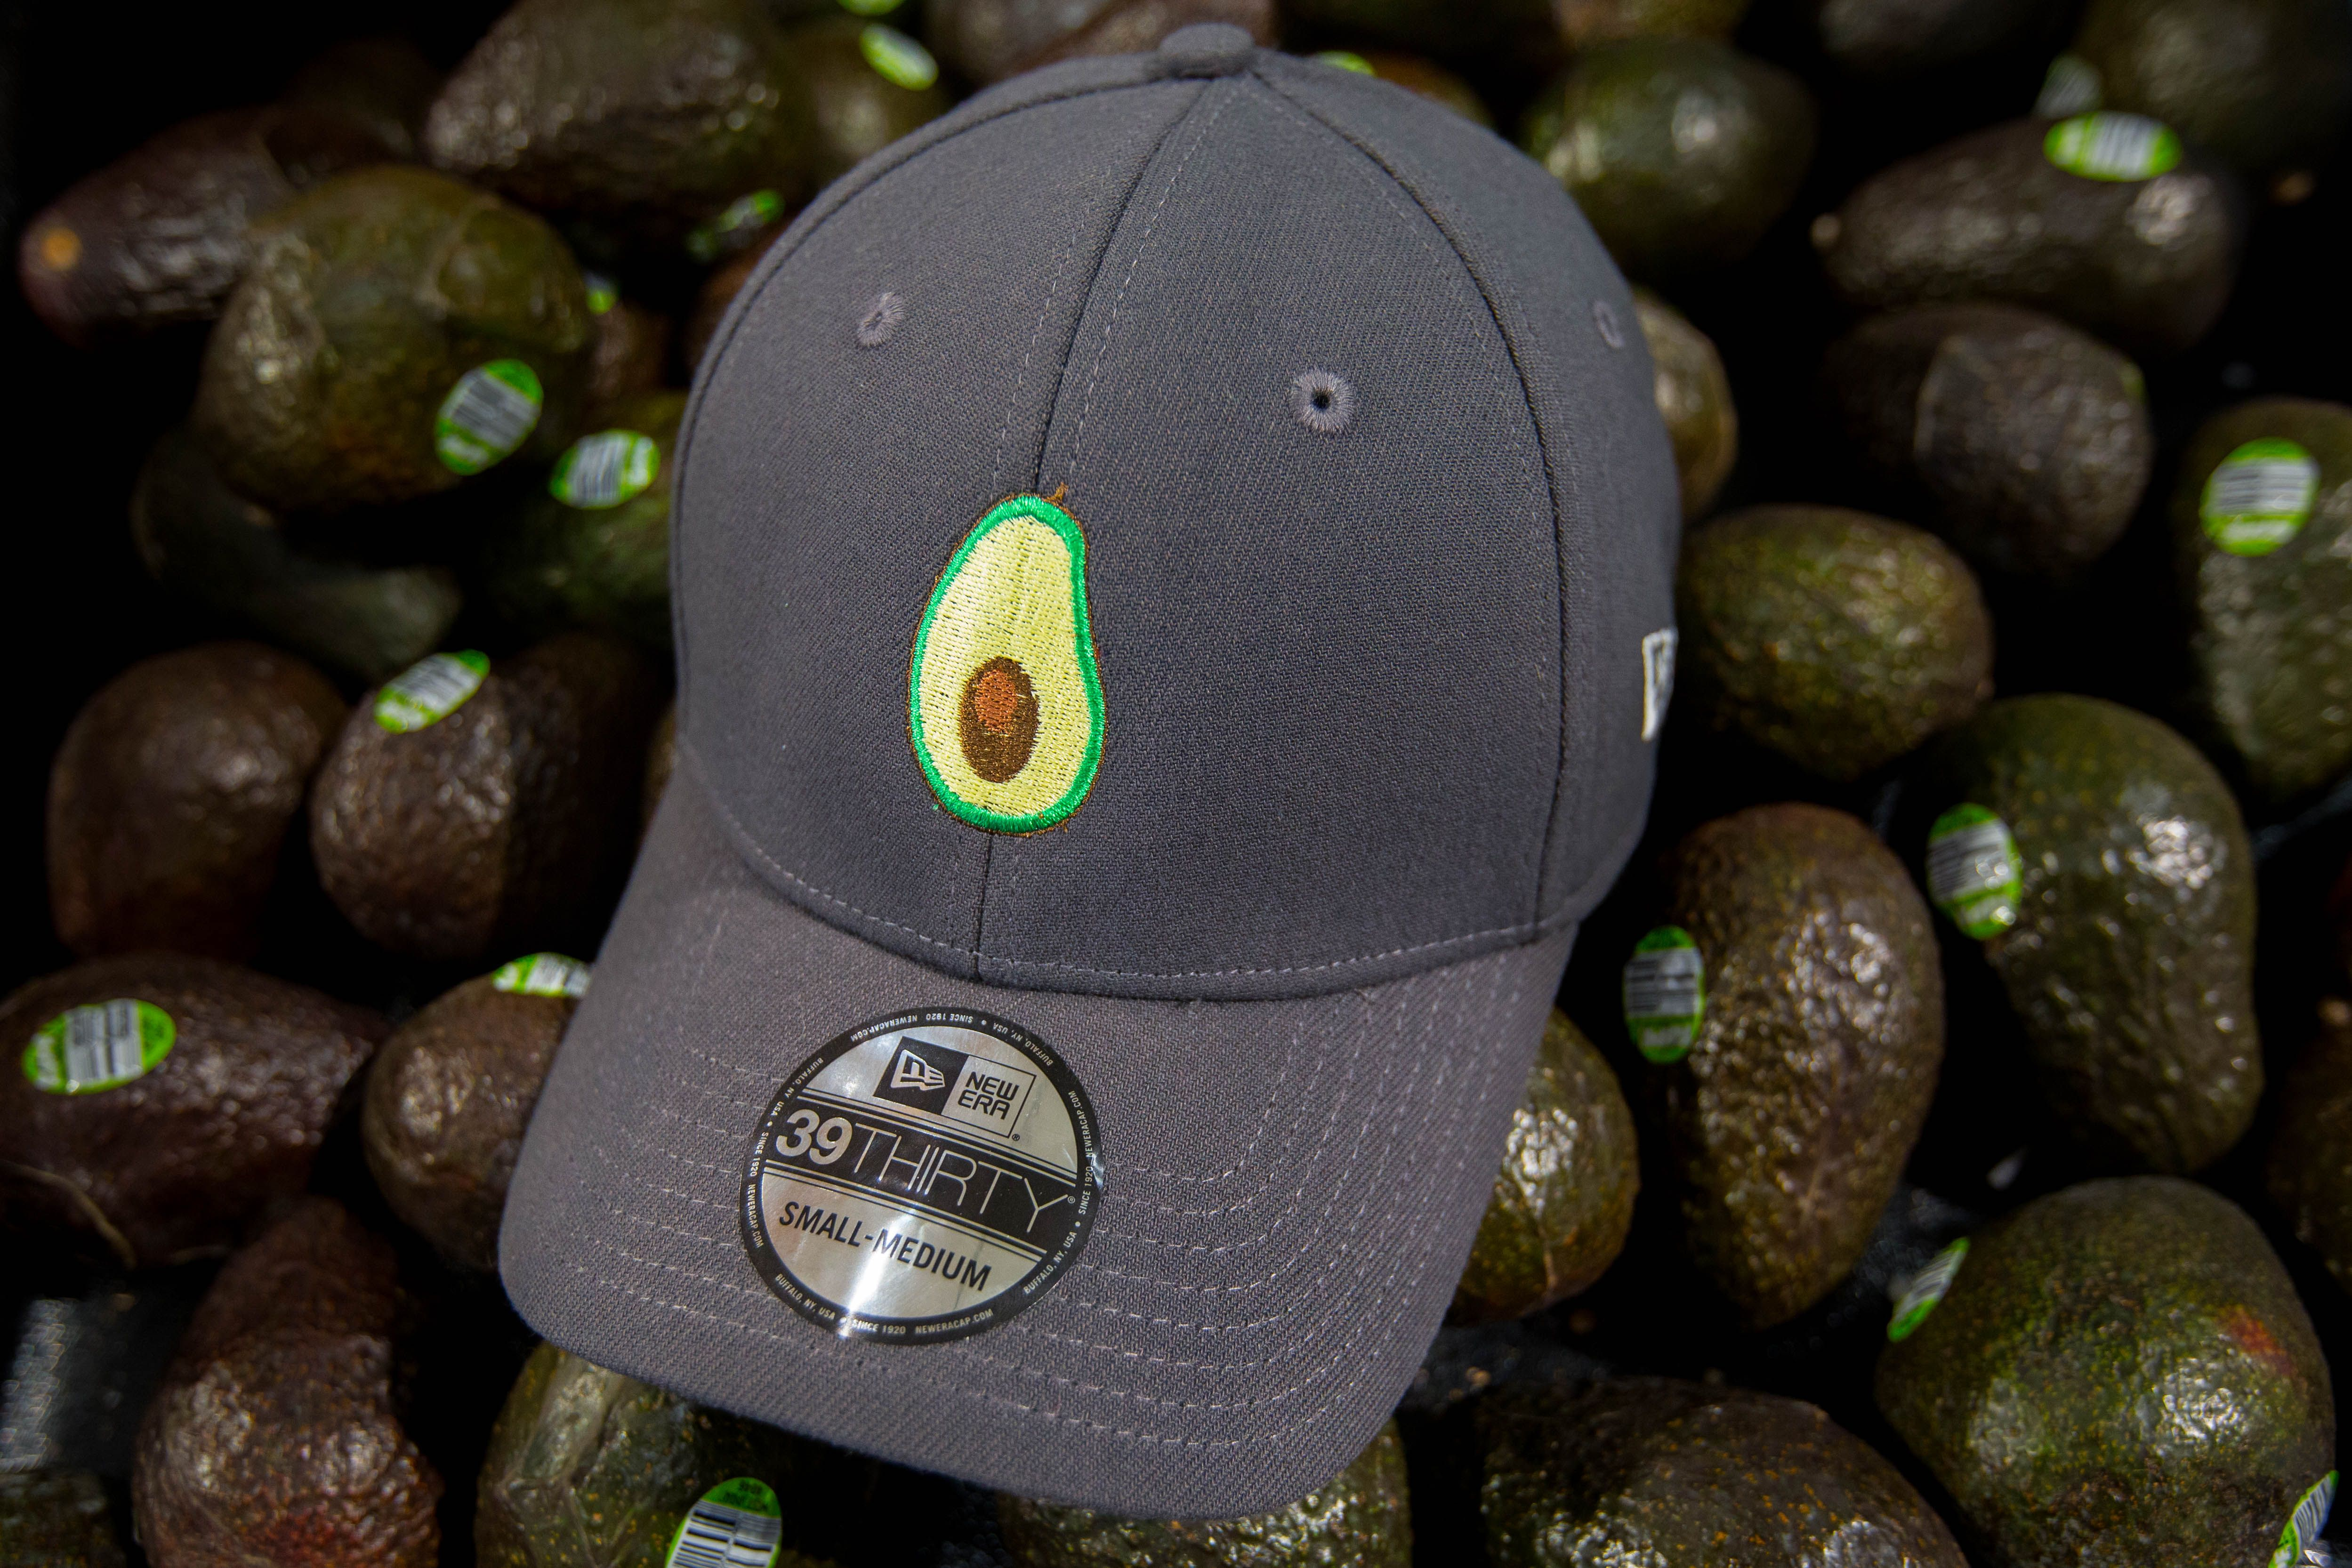 Lids Custom Hats >> Share Your Love For Guacamole With A Custom Avocado Hat From